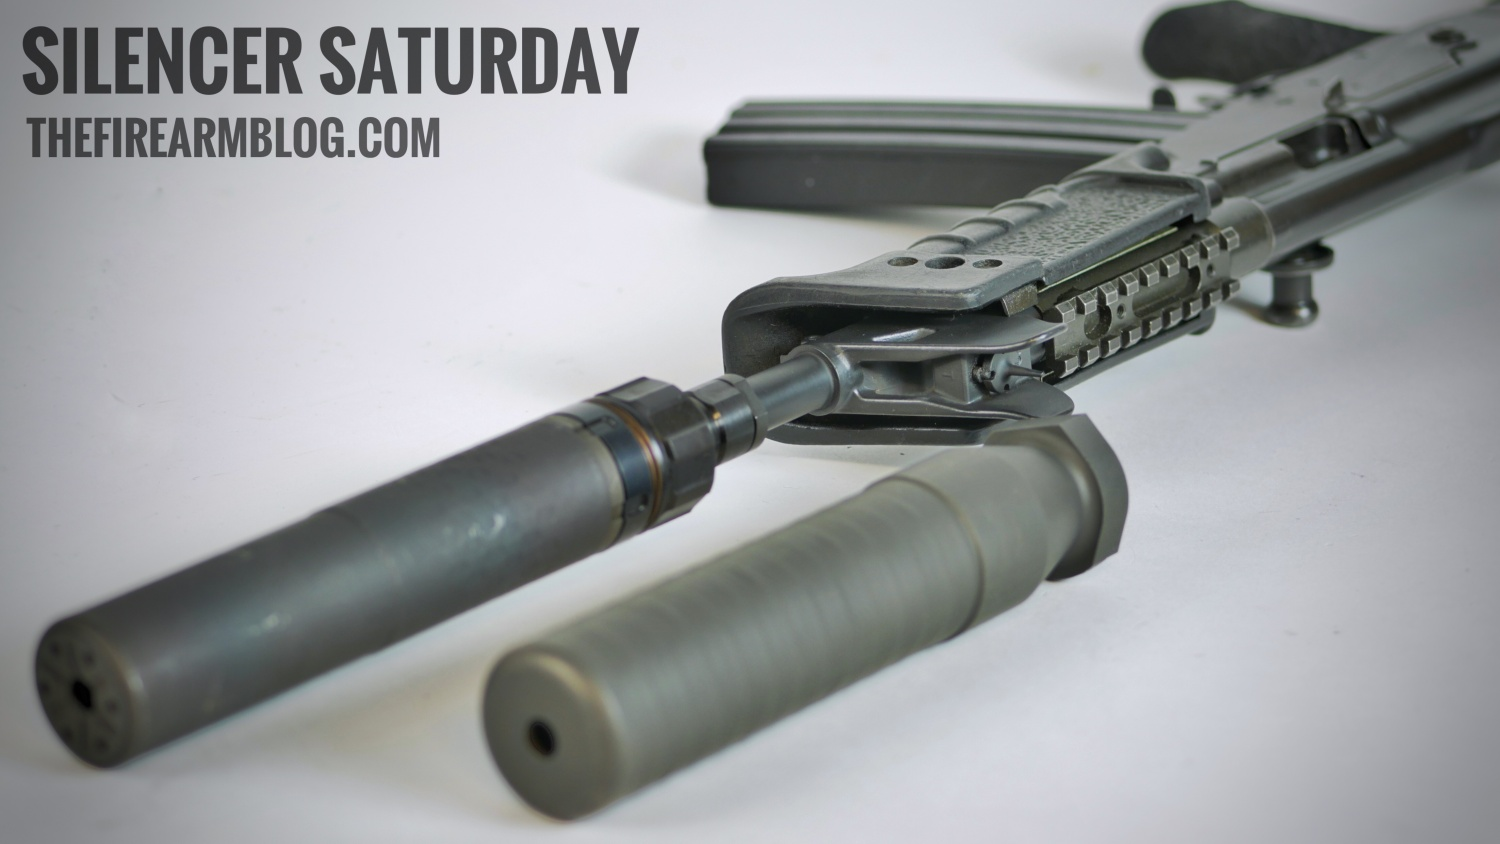 SILENCER SATURDAY #9: Demystifying The NFA Buying Process ...